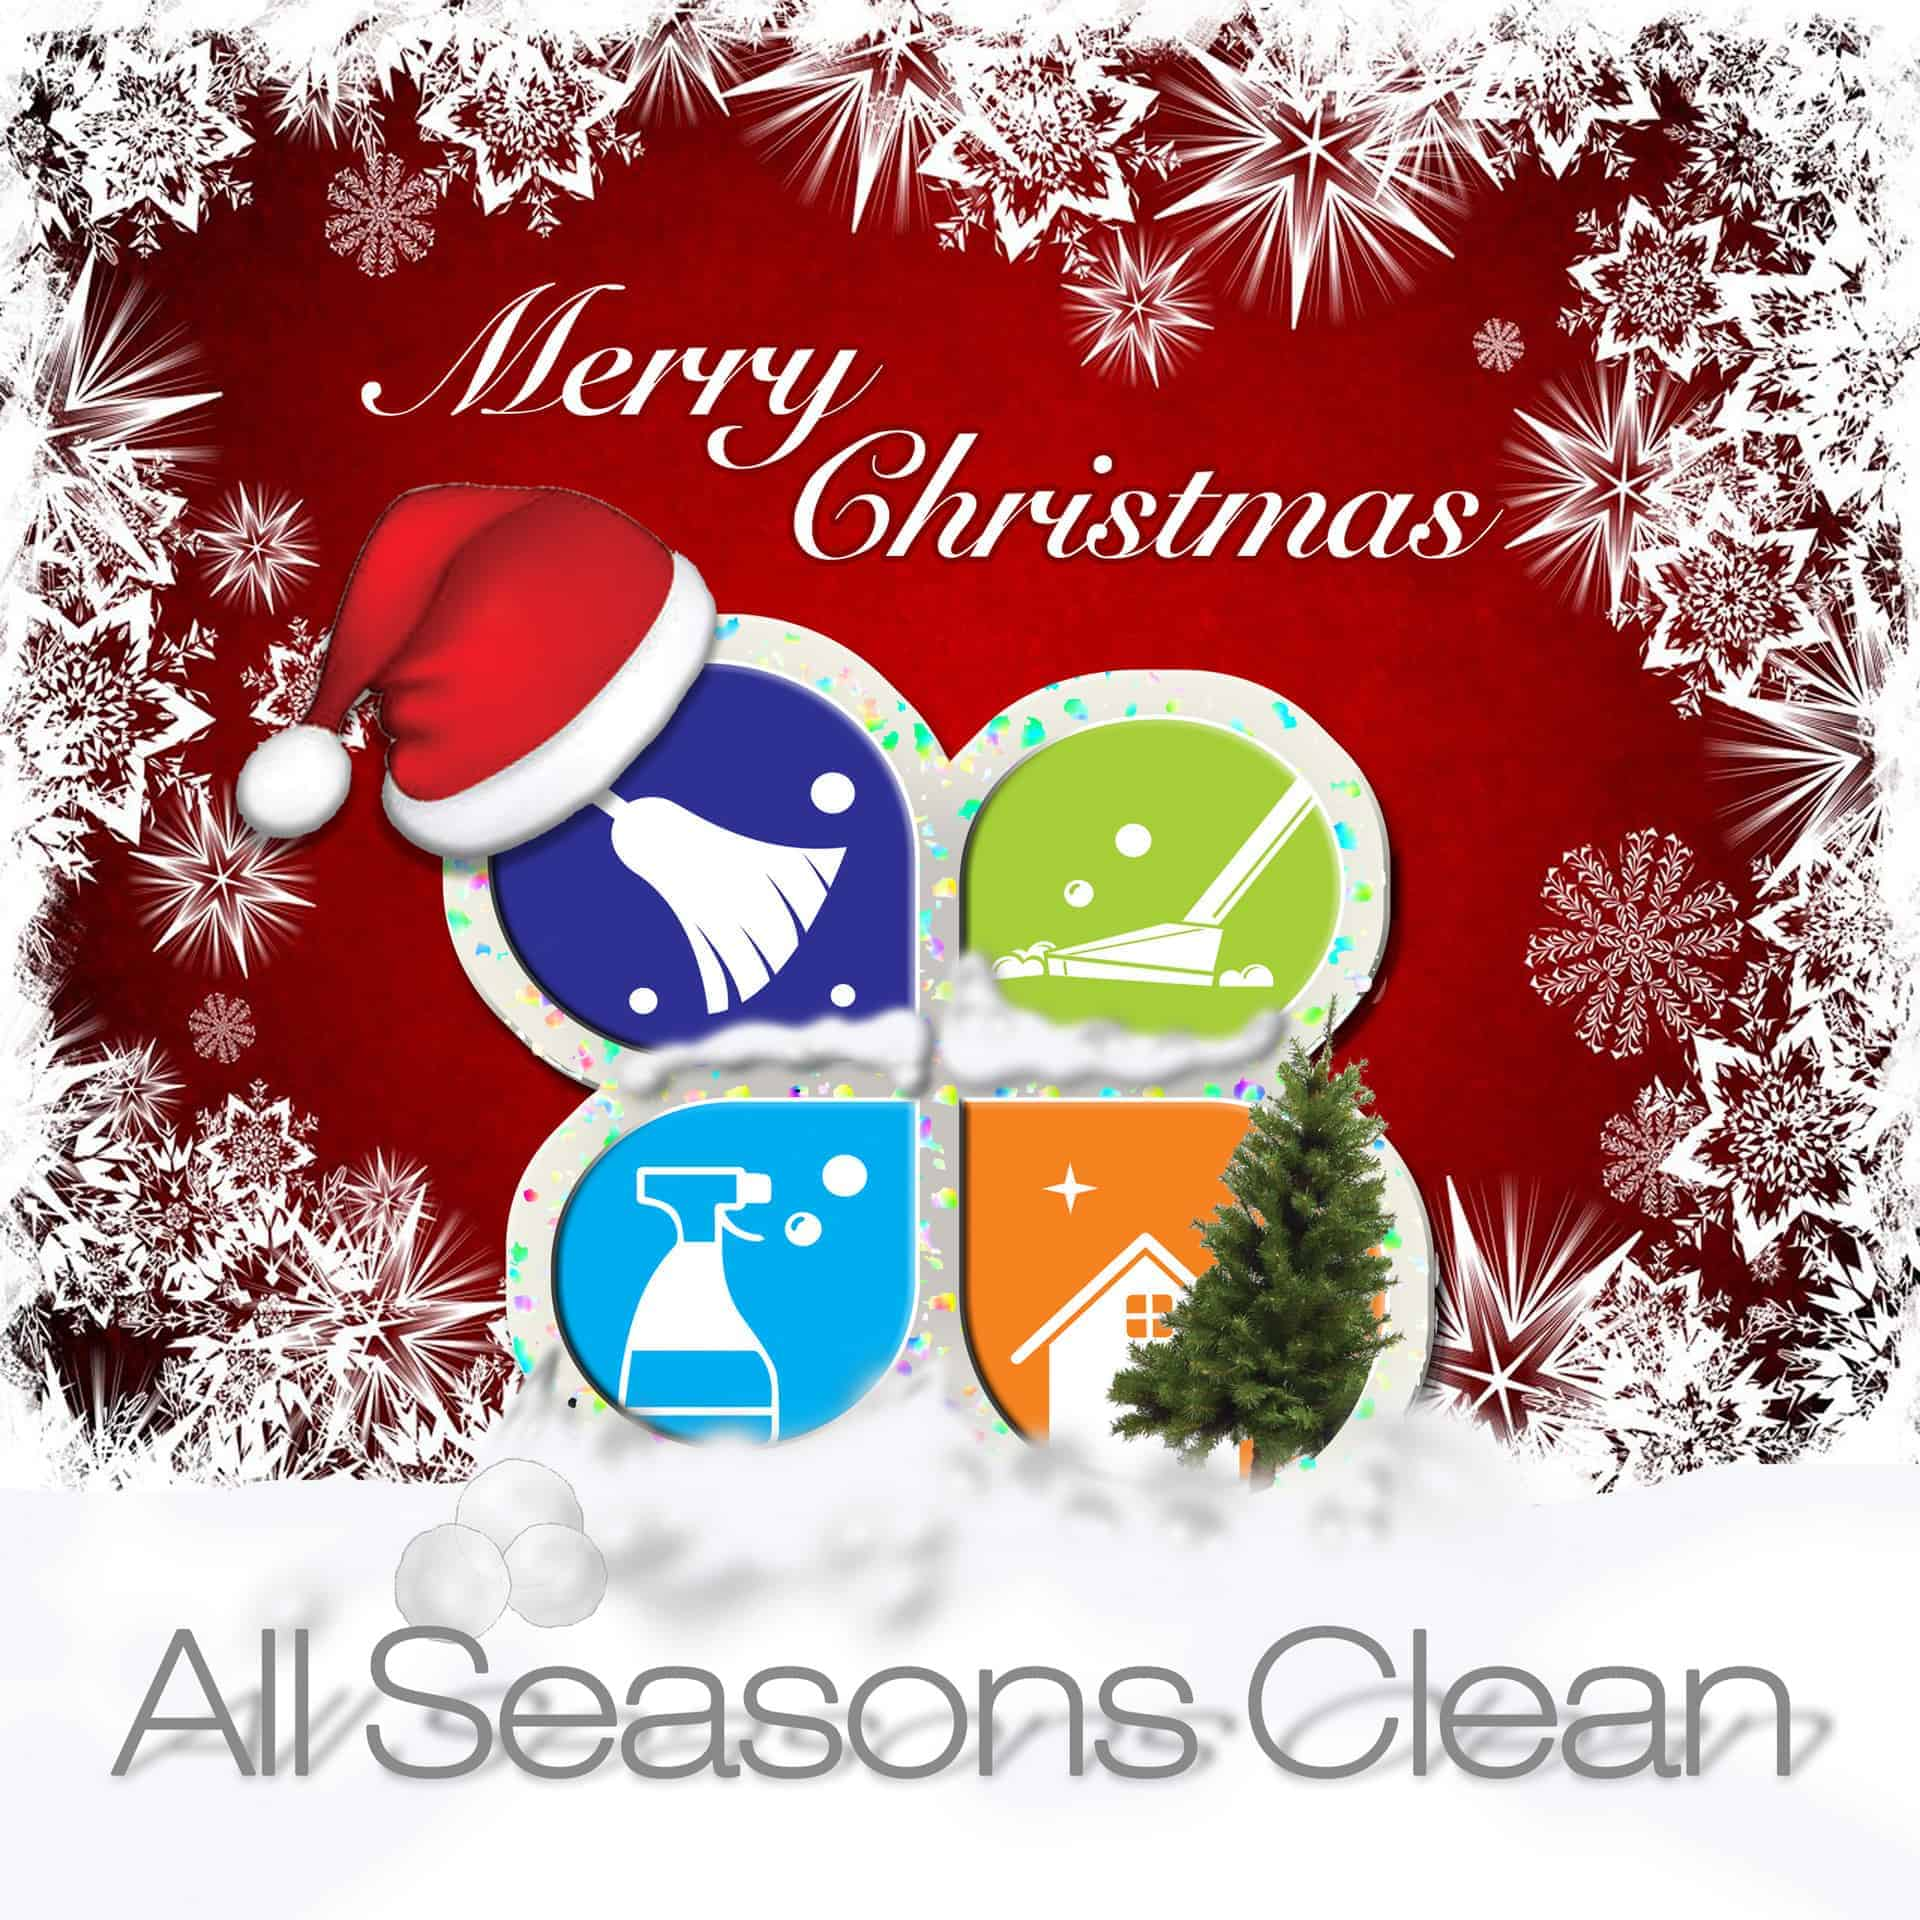 All-Seasons-Clean-Logo-XMas